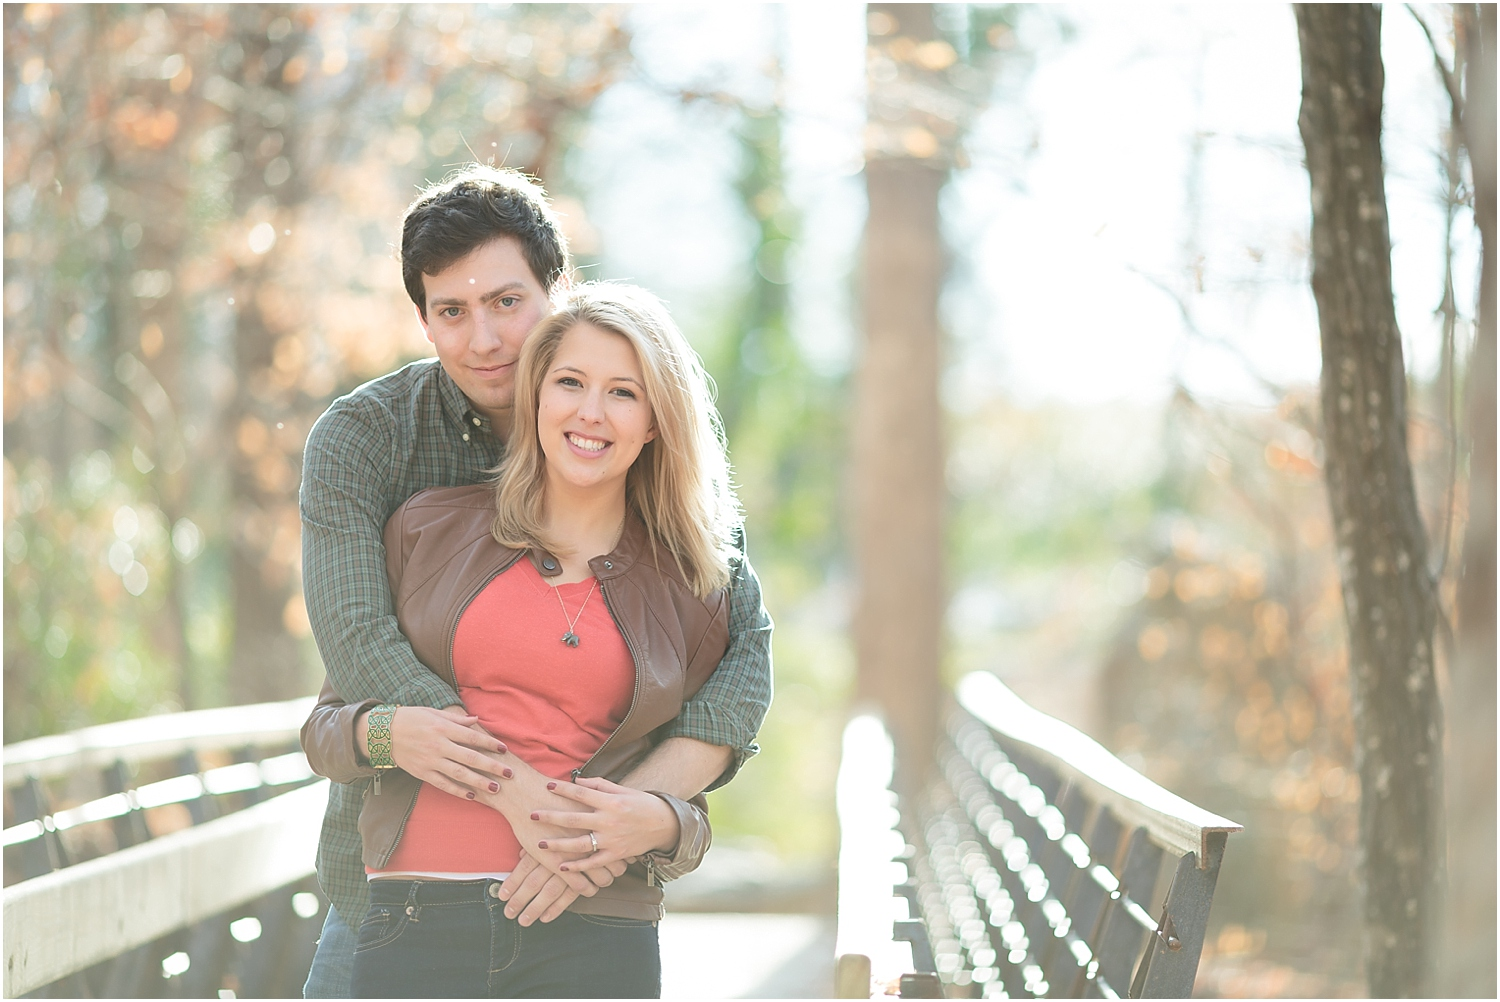 141207--9340clemson-engagement-shoot_blog.jpg